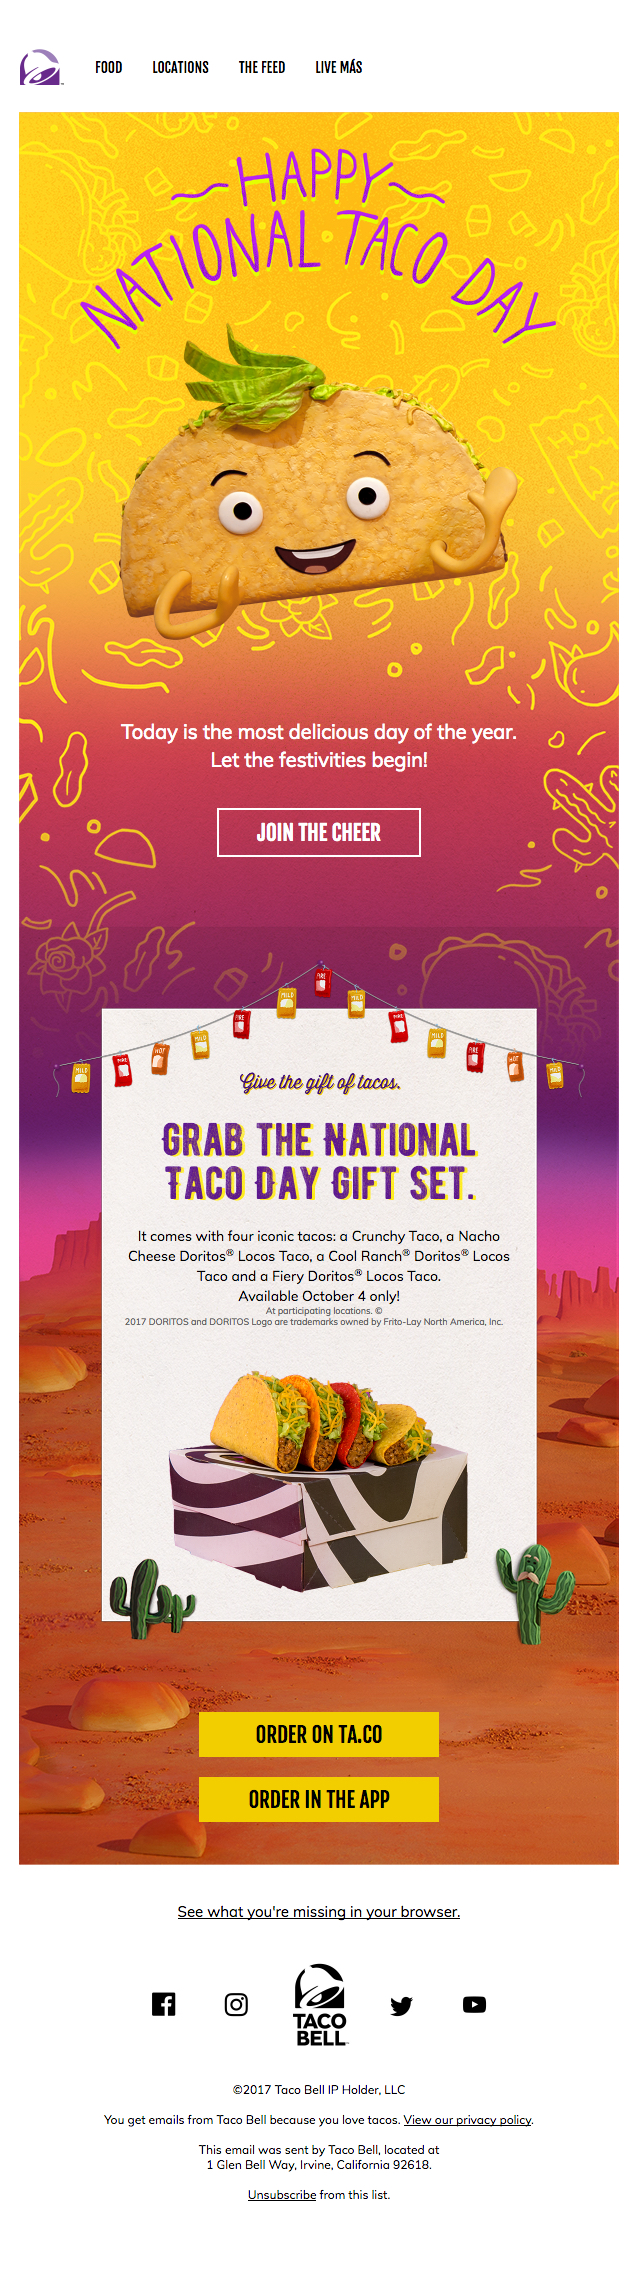 Adorable Taco Email From Taco Bell Email Design Inspiration Email Design Taco Bell